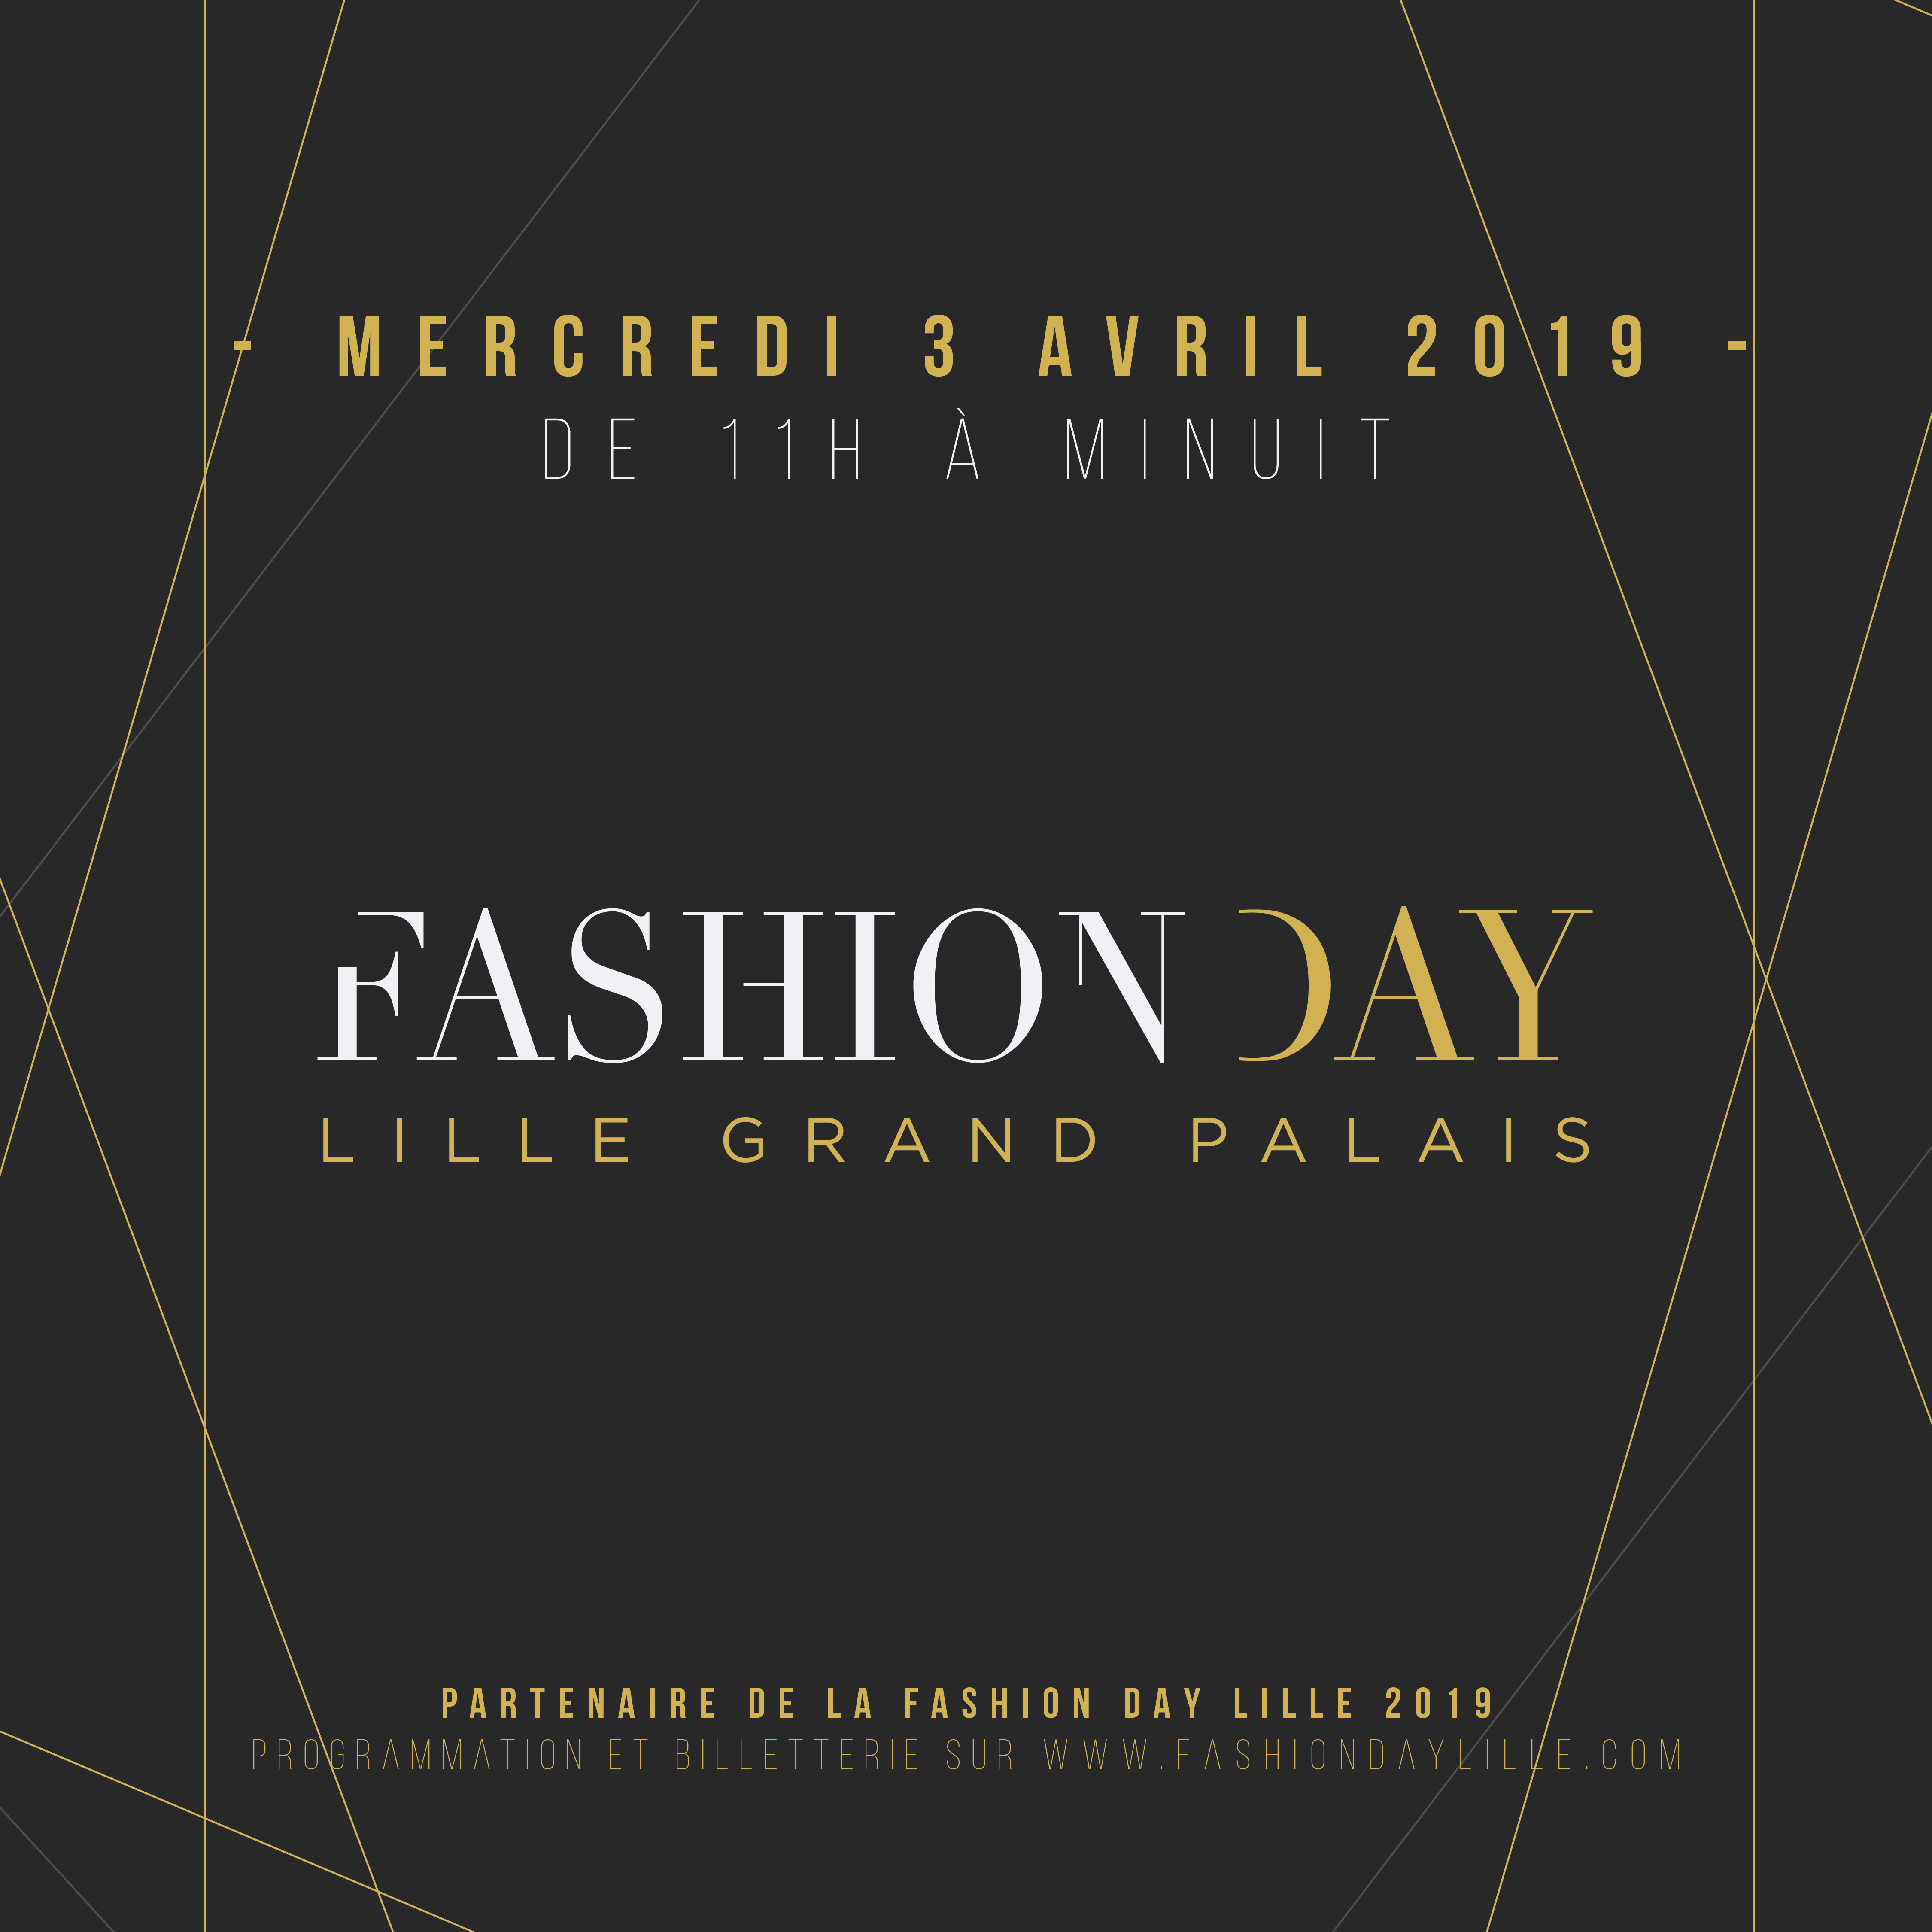 fashion-day-mode-defile-lille-grand-palais